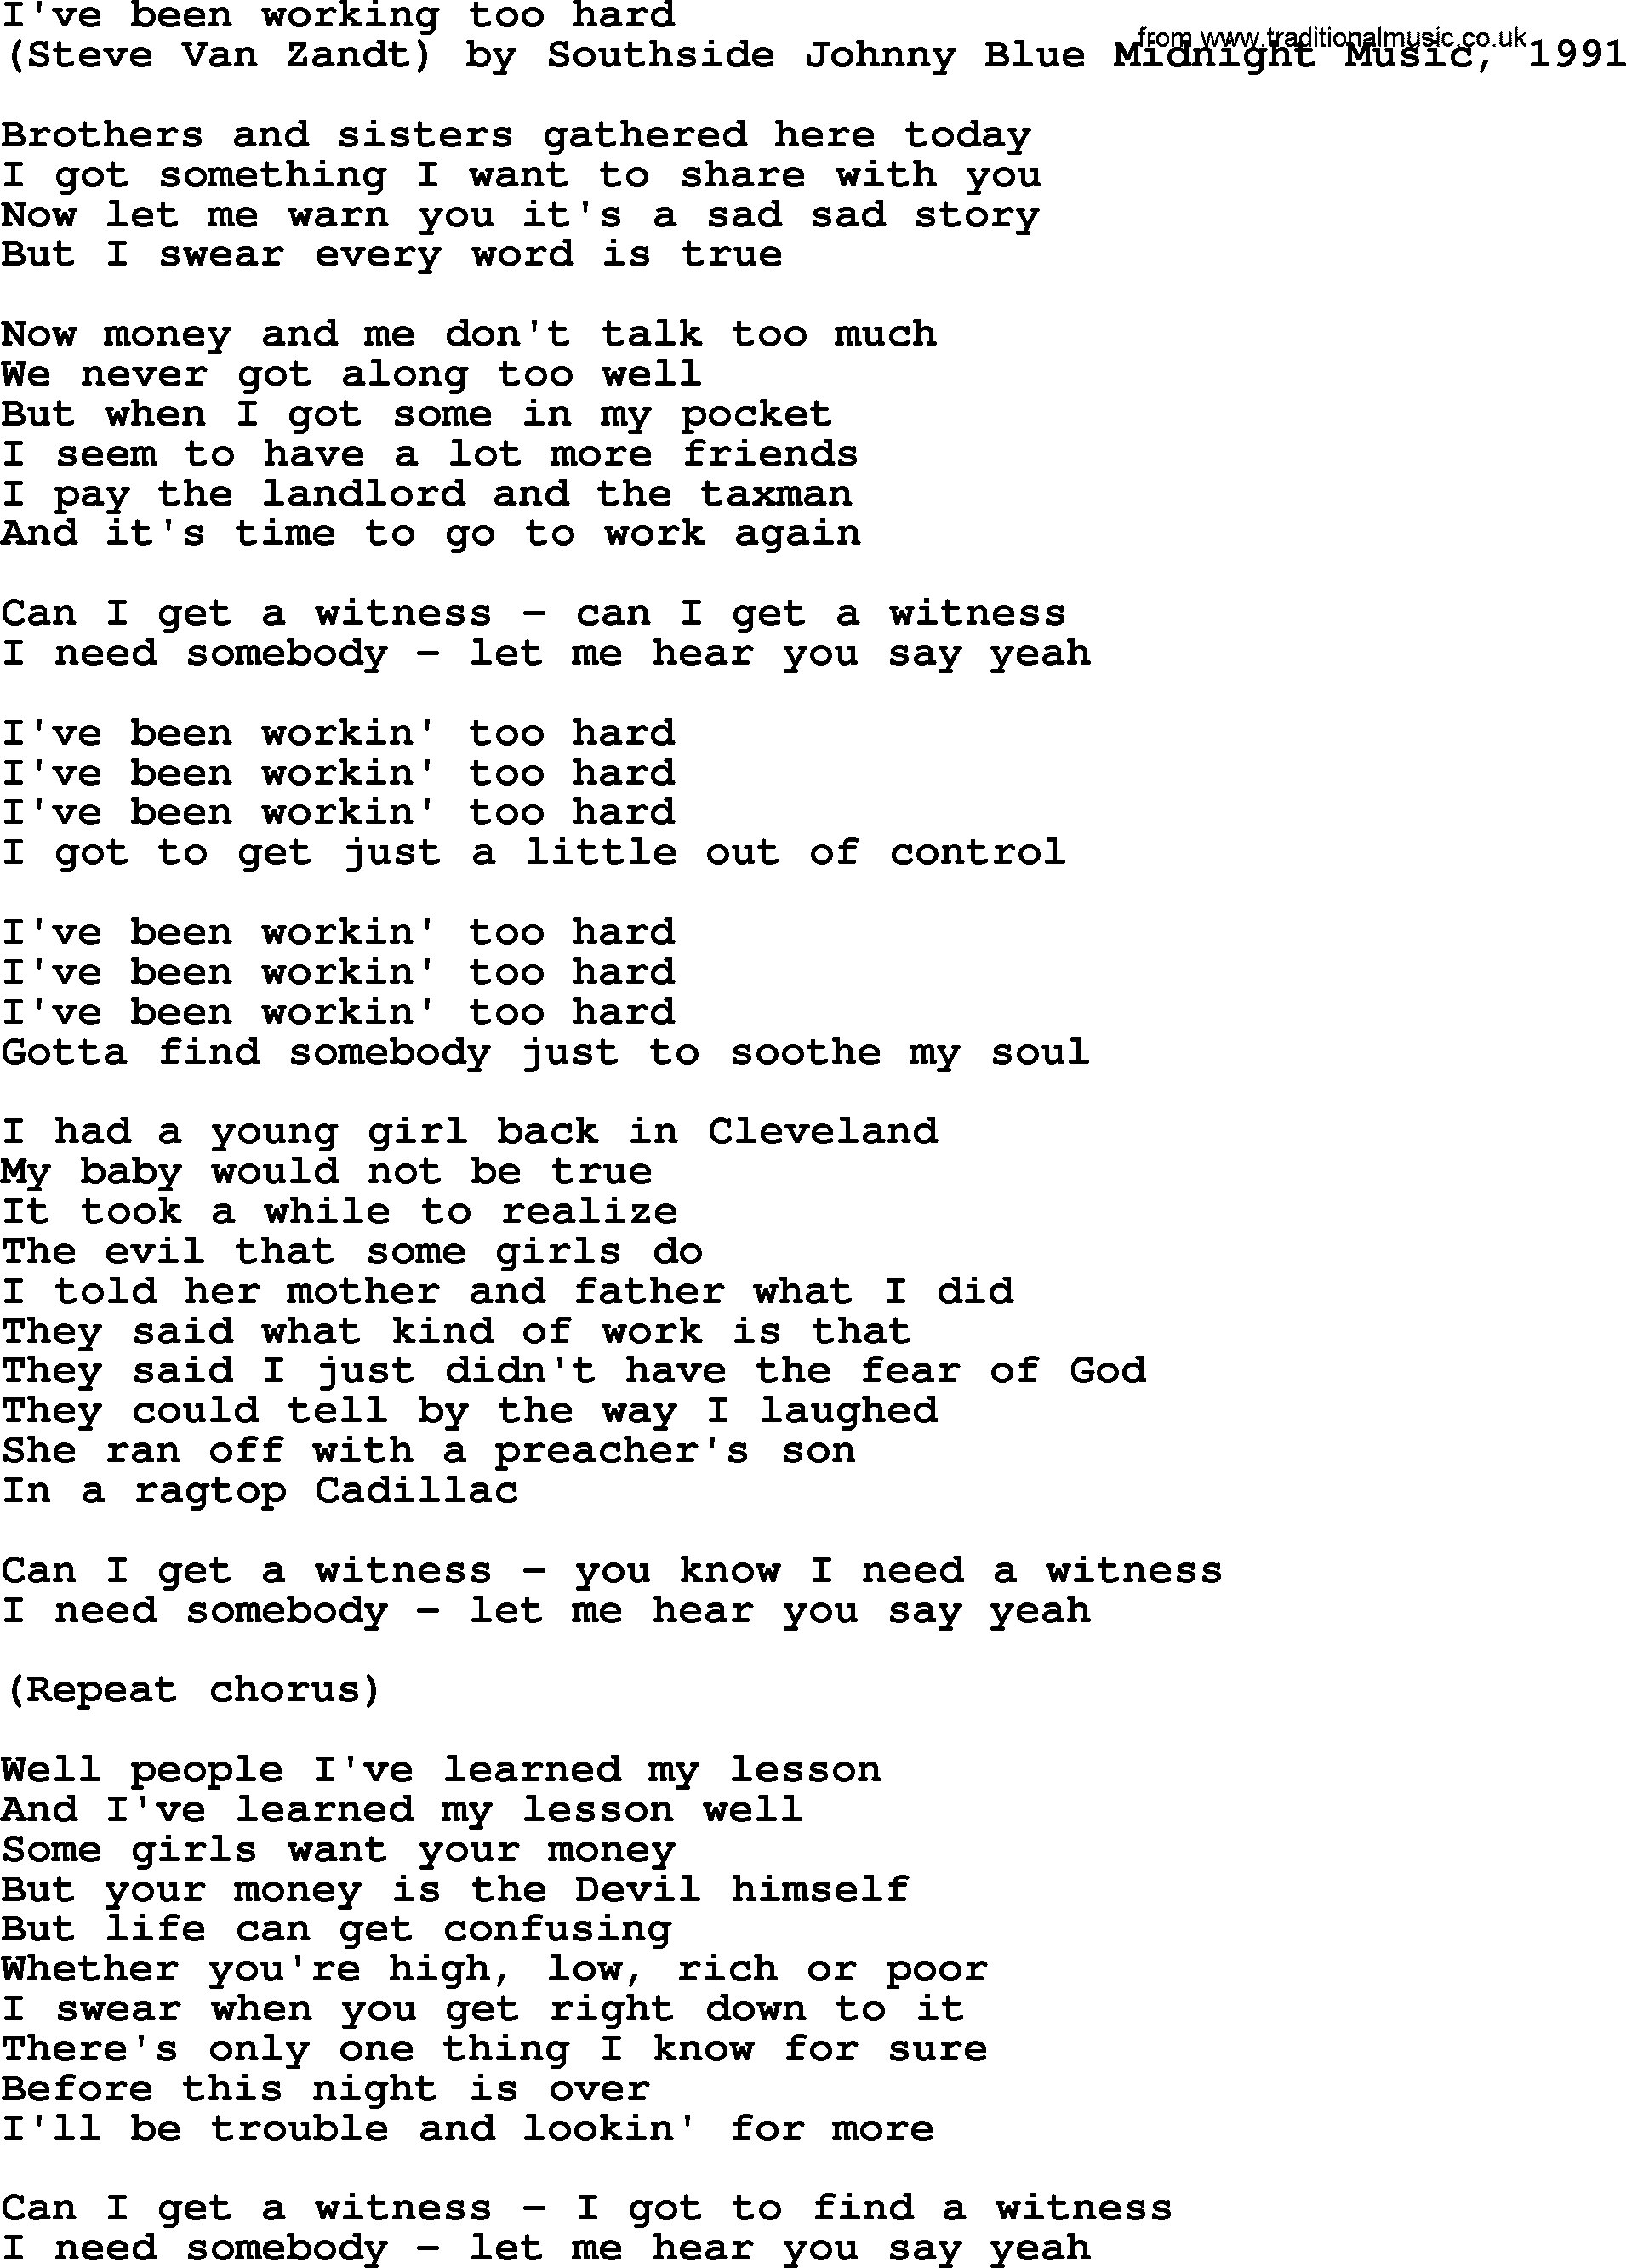 bruce springsteen song i ve been working too hard lyrics bruce springsteen song i ve been working too hard lyrics